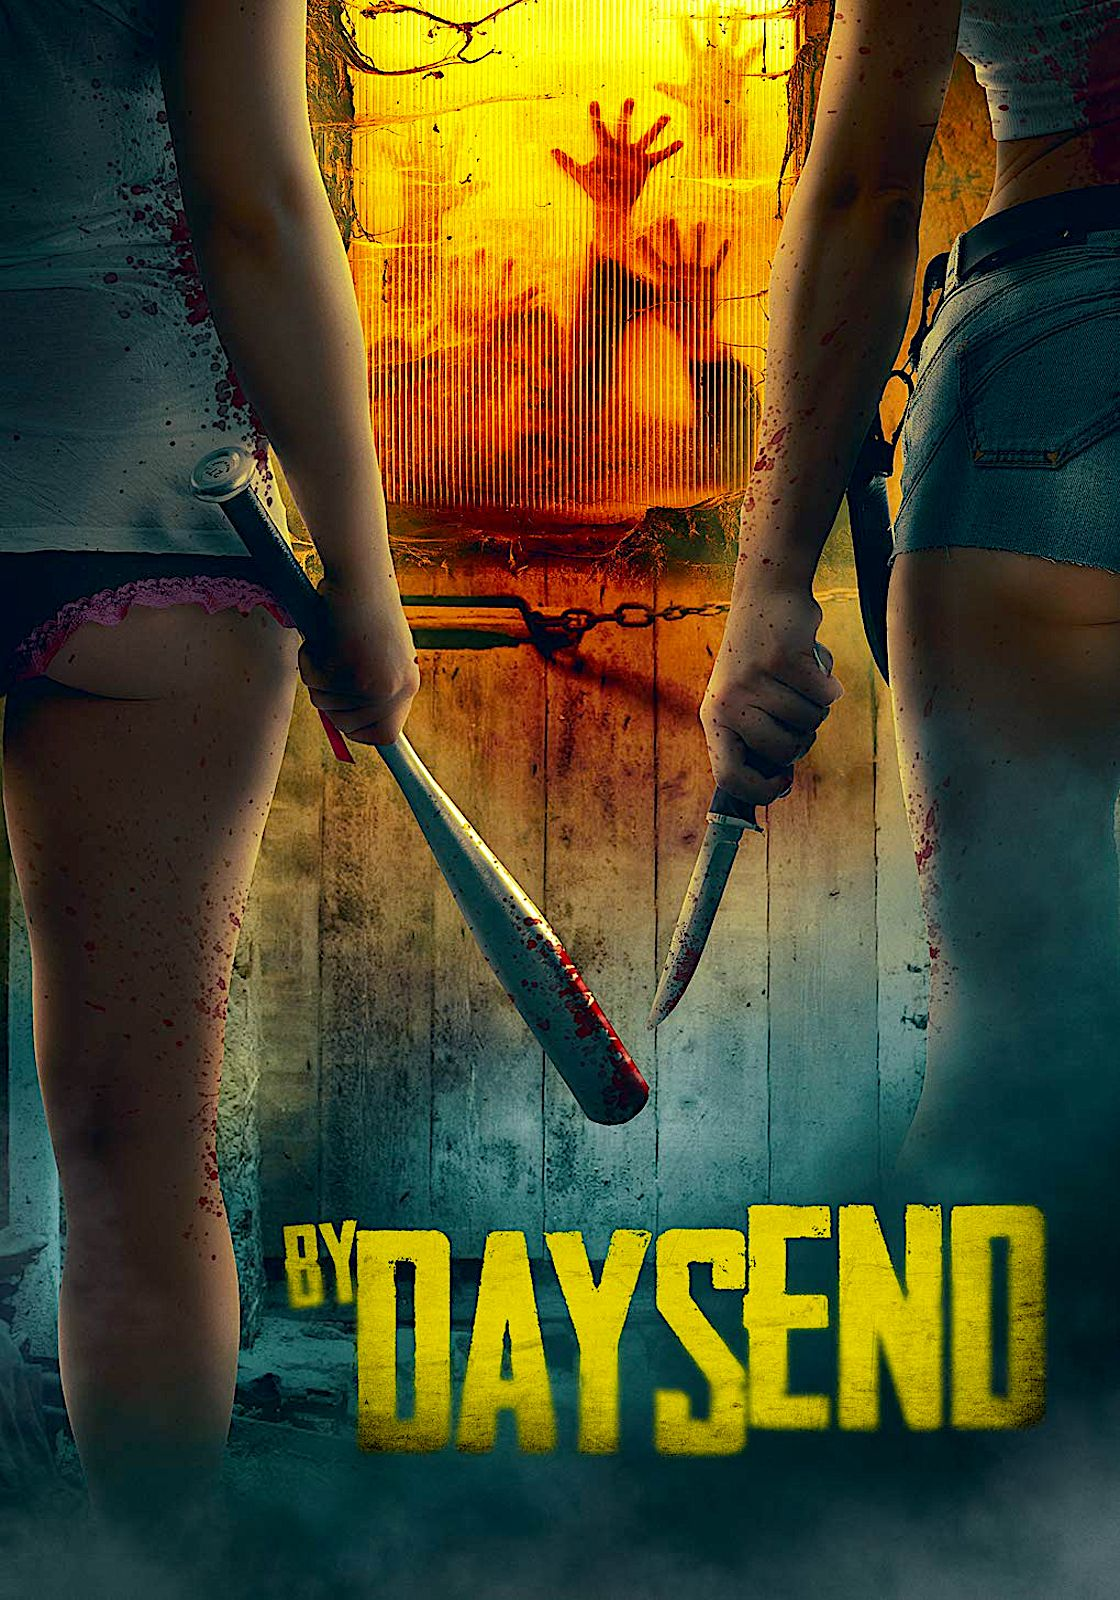 By Day S End Dvd Breaking Glass Pictures Movies Online Free Movies Online Movies